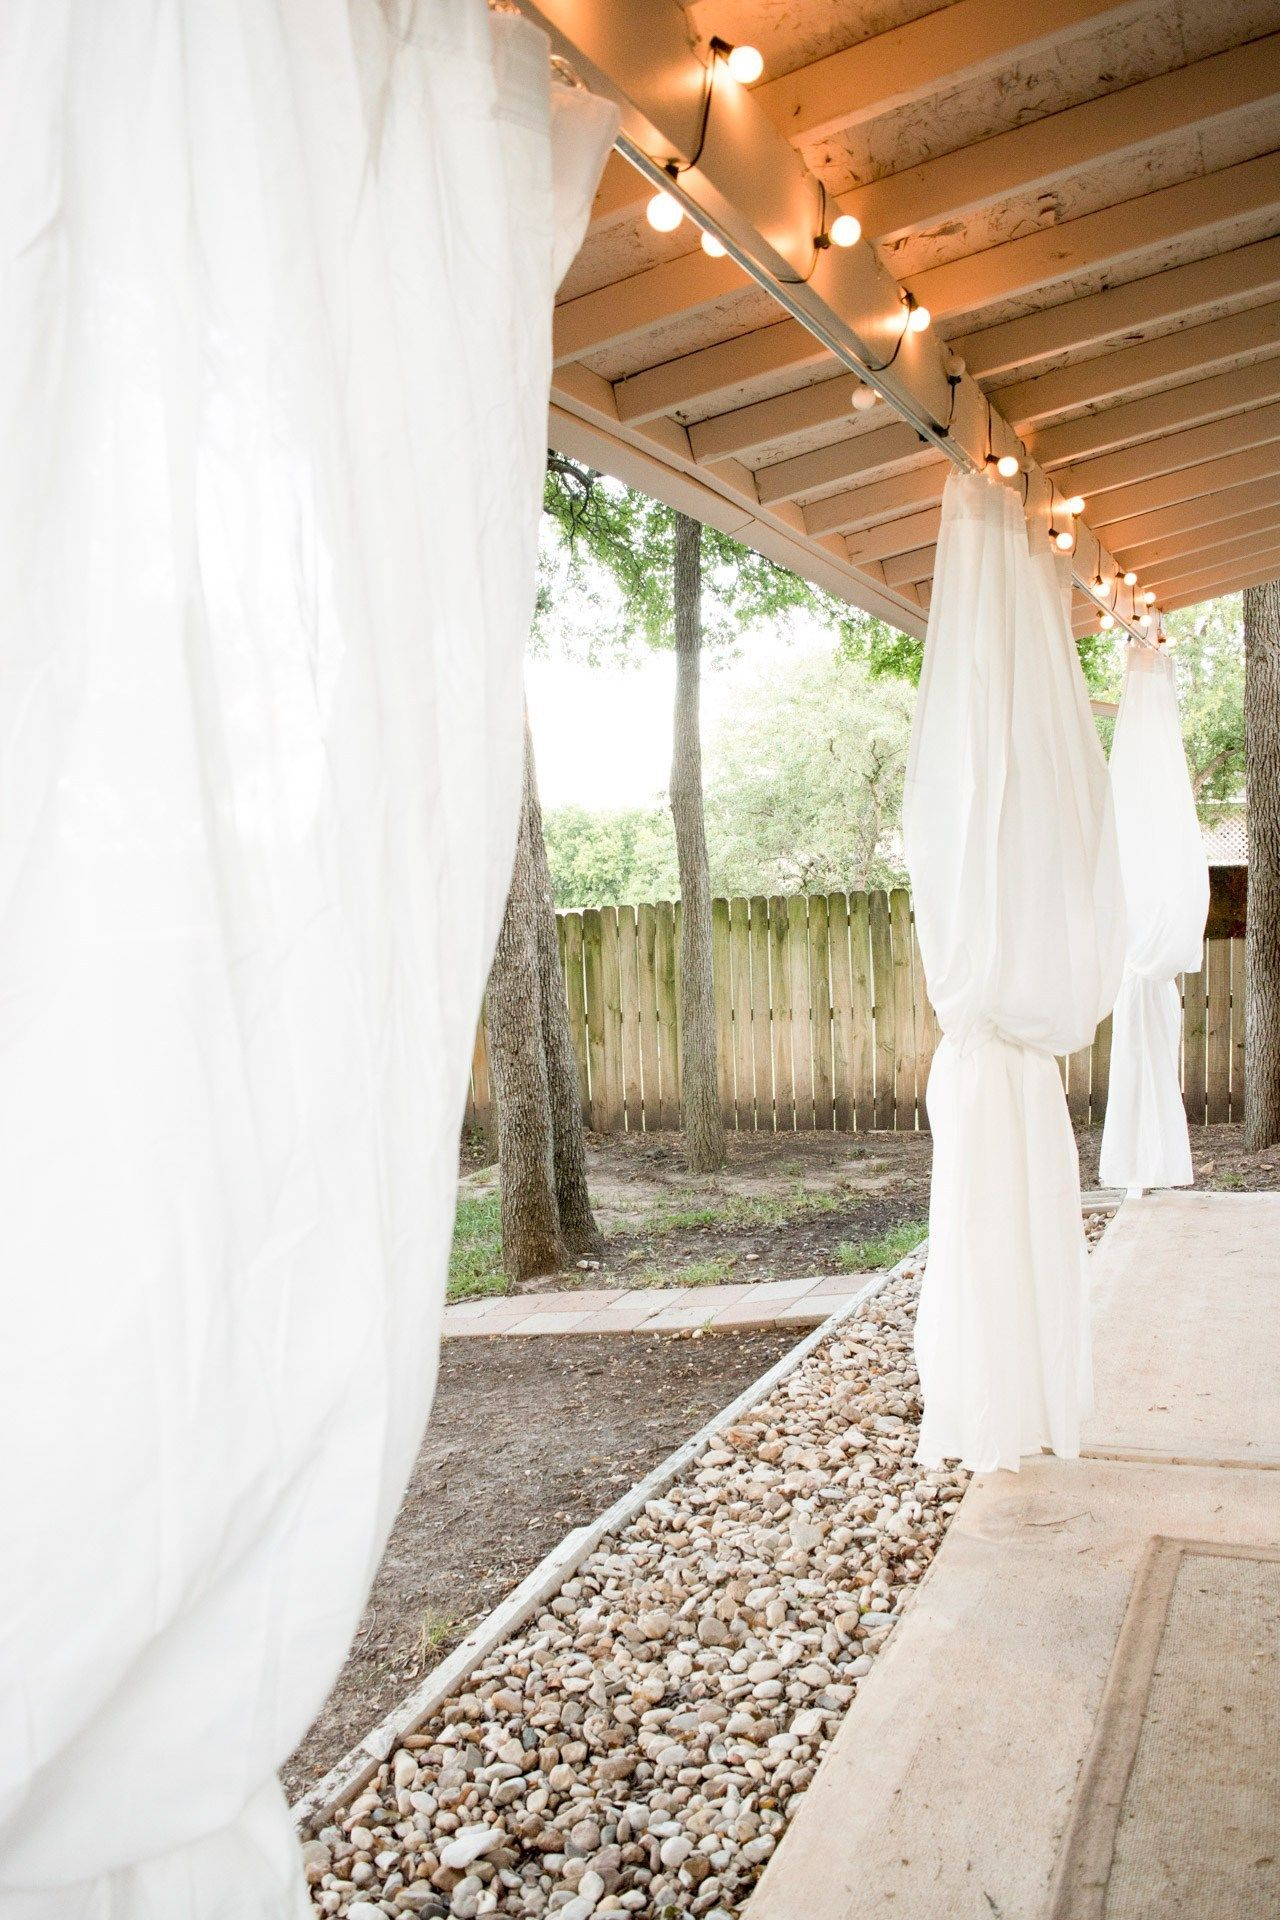 Outdoor Curtains An Inexpensive Ikea Patio Makeover Outdoor Patio Ideas Backyards Outdoor Curtains For Patio Patio Makeover